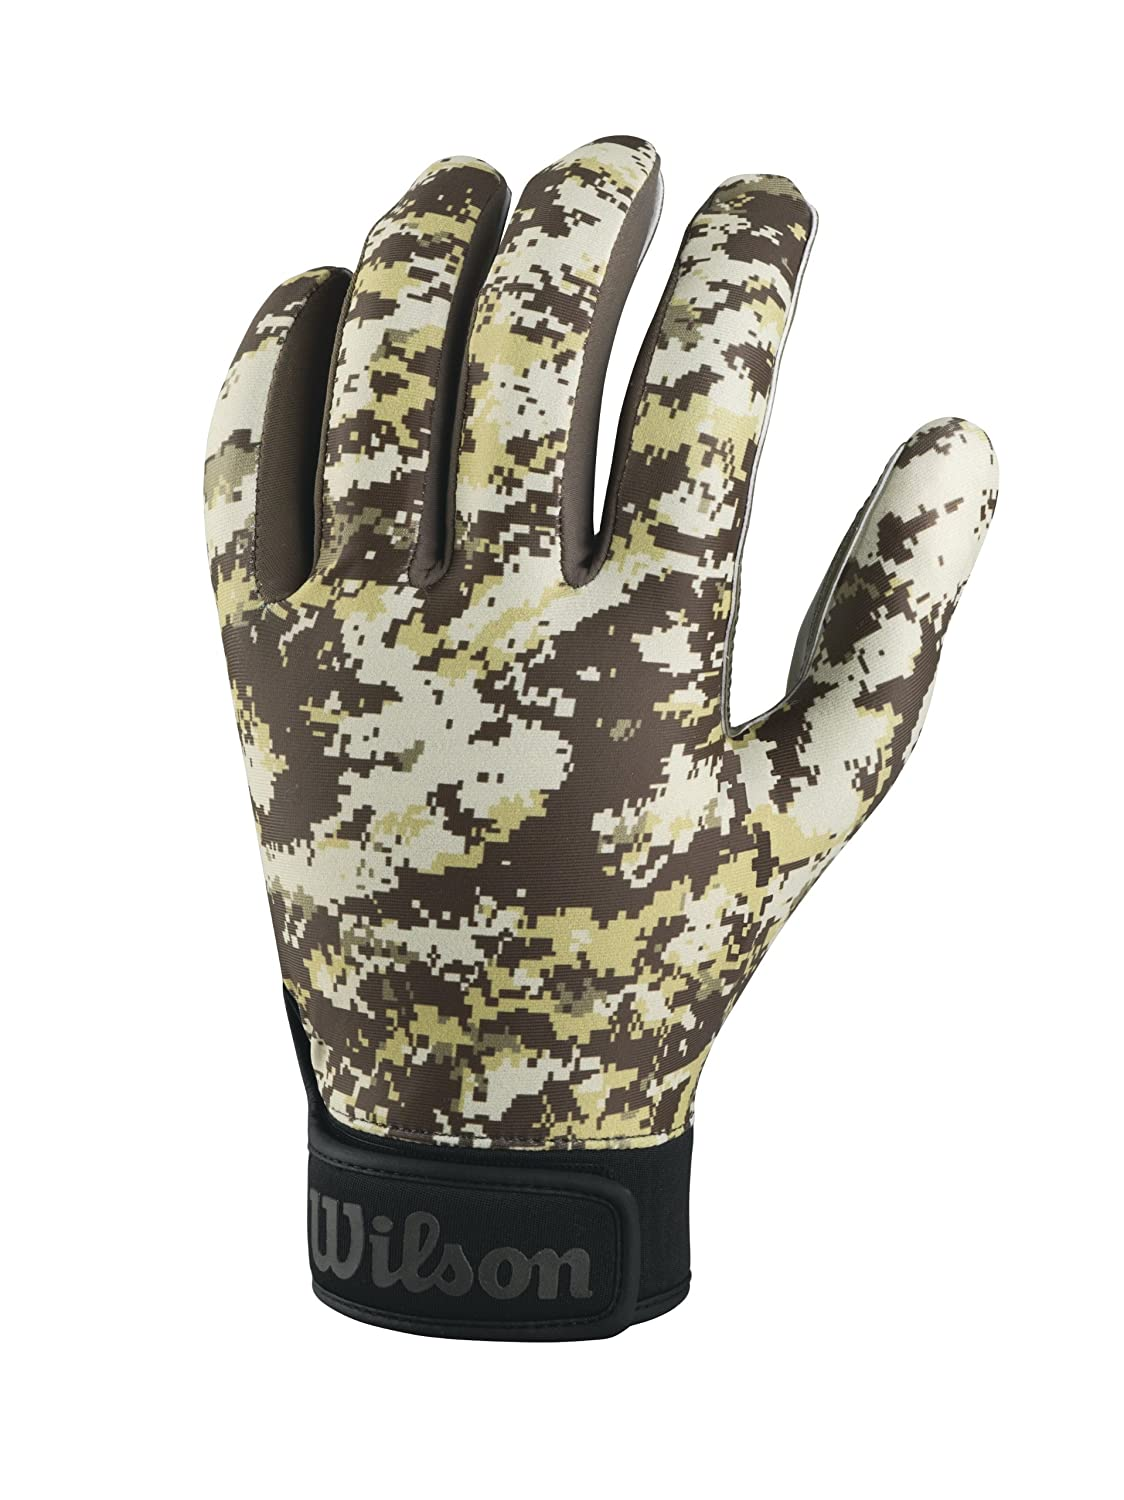 Receiver Gloves Football Football Receivers Gloves